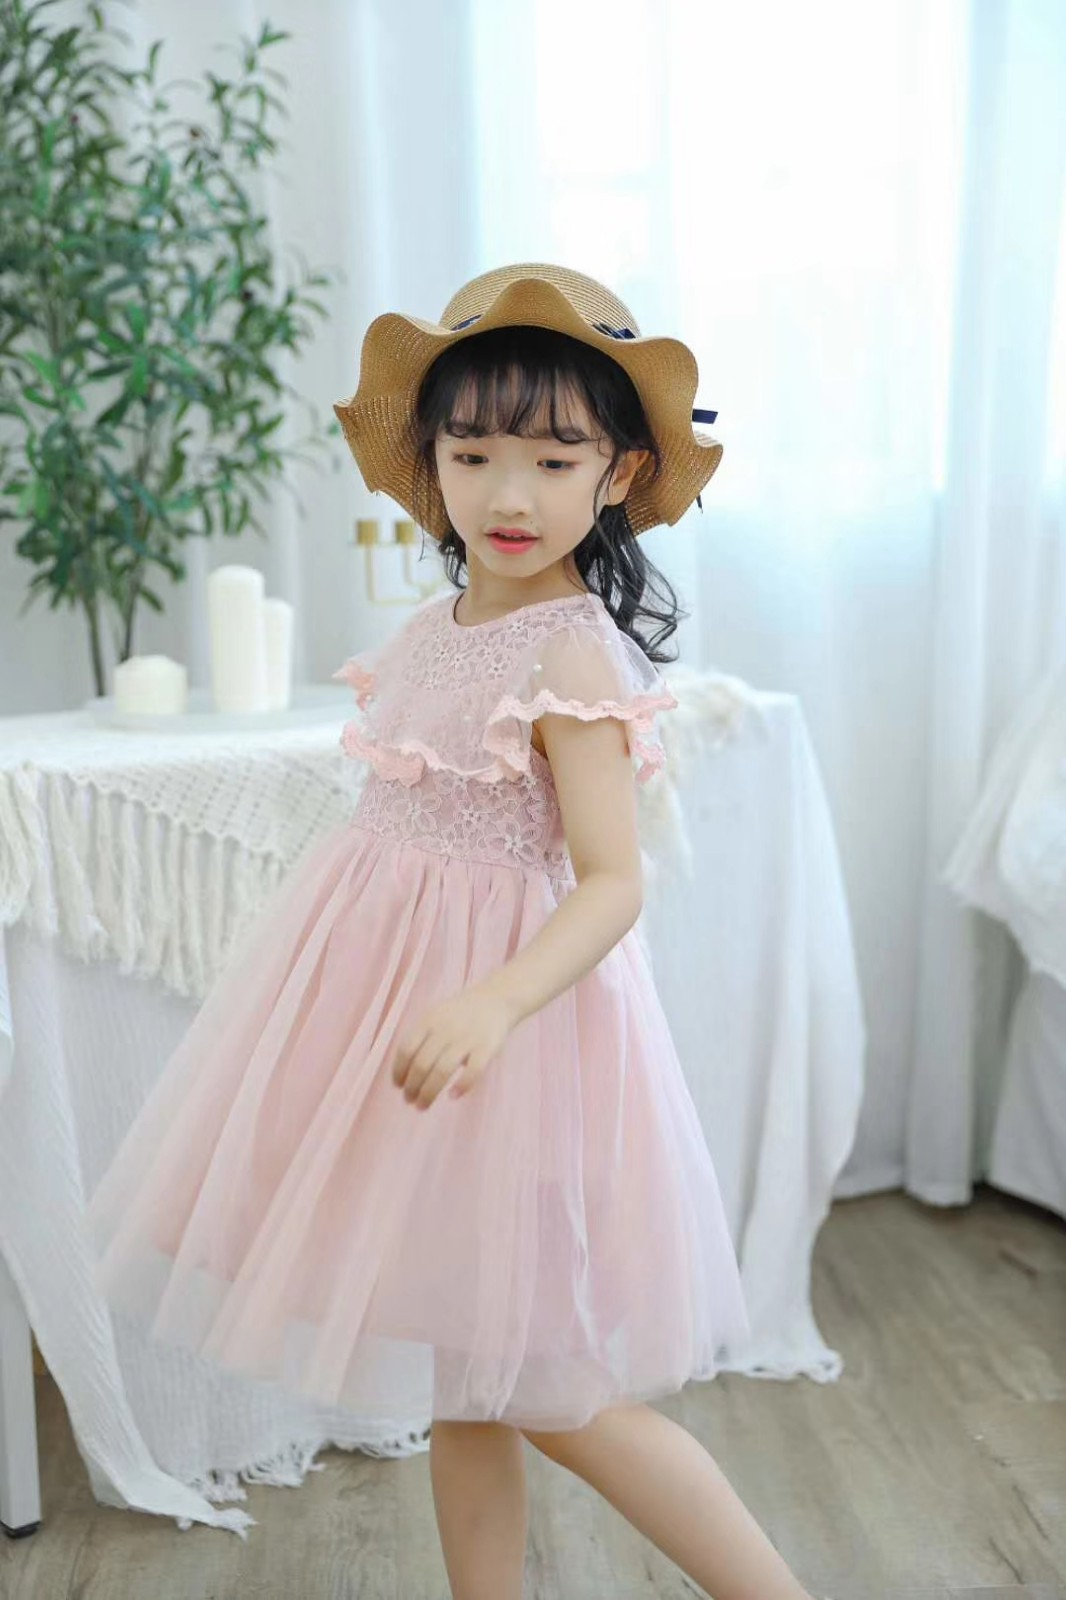 Kaifeng brand children's clothing wholesale wholesale source camel summer new brand to join in peace of mind